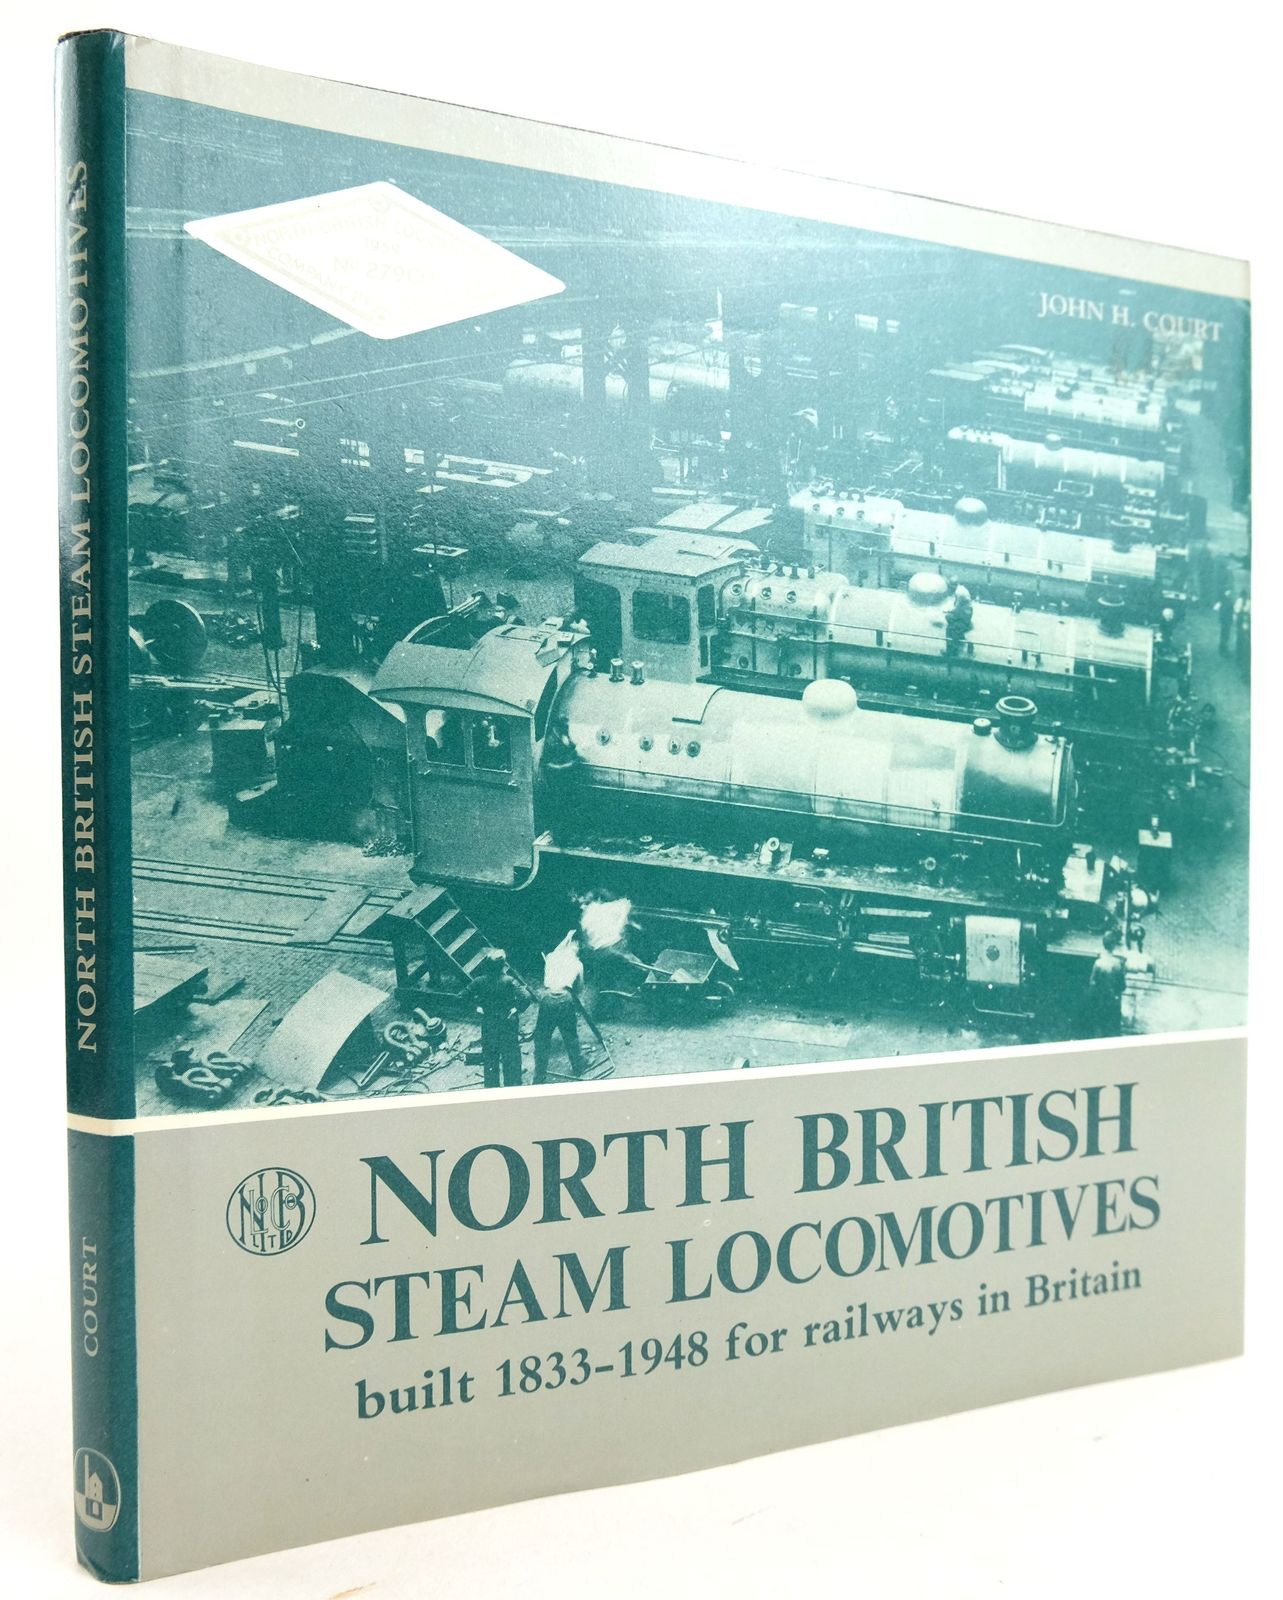 Photo of NORTH BRITISH STEAM LOCOMOTIVES BUILT 1833-1948 FOR RAILWAYS IN BRITAIN written by Court, John H. published by D. Bradford Barton (STOCK CODE: 1819874)  for sale by Stella & Rose's Books